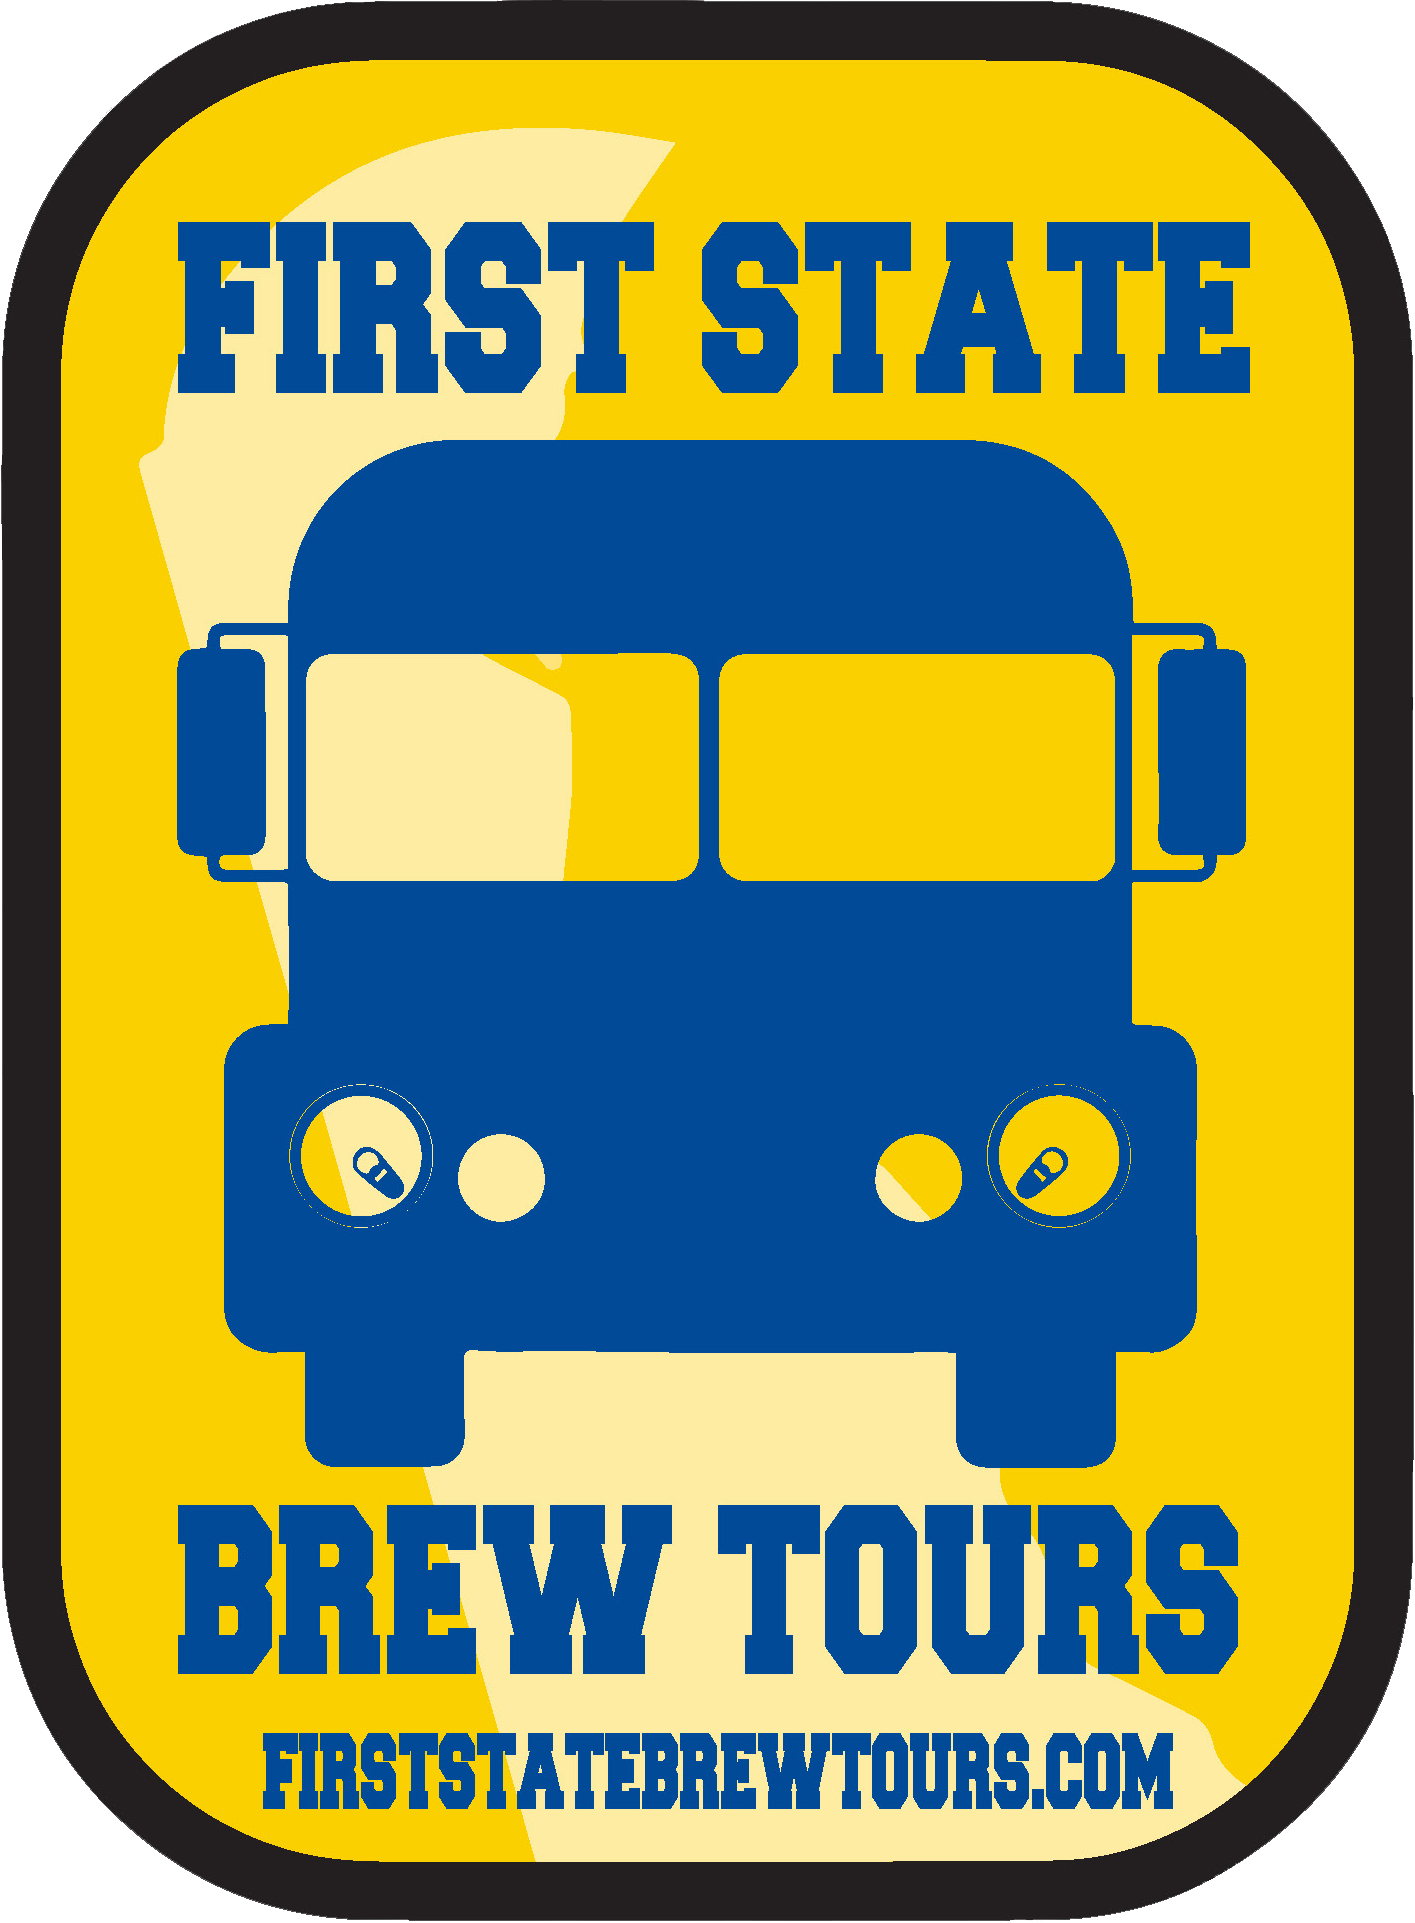 First State Brew Tours